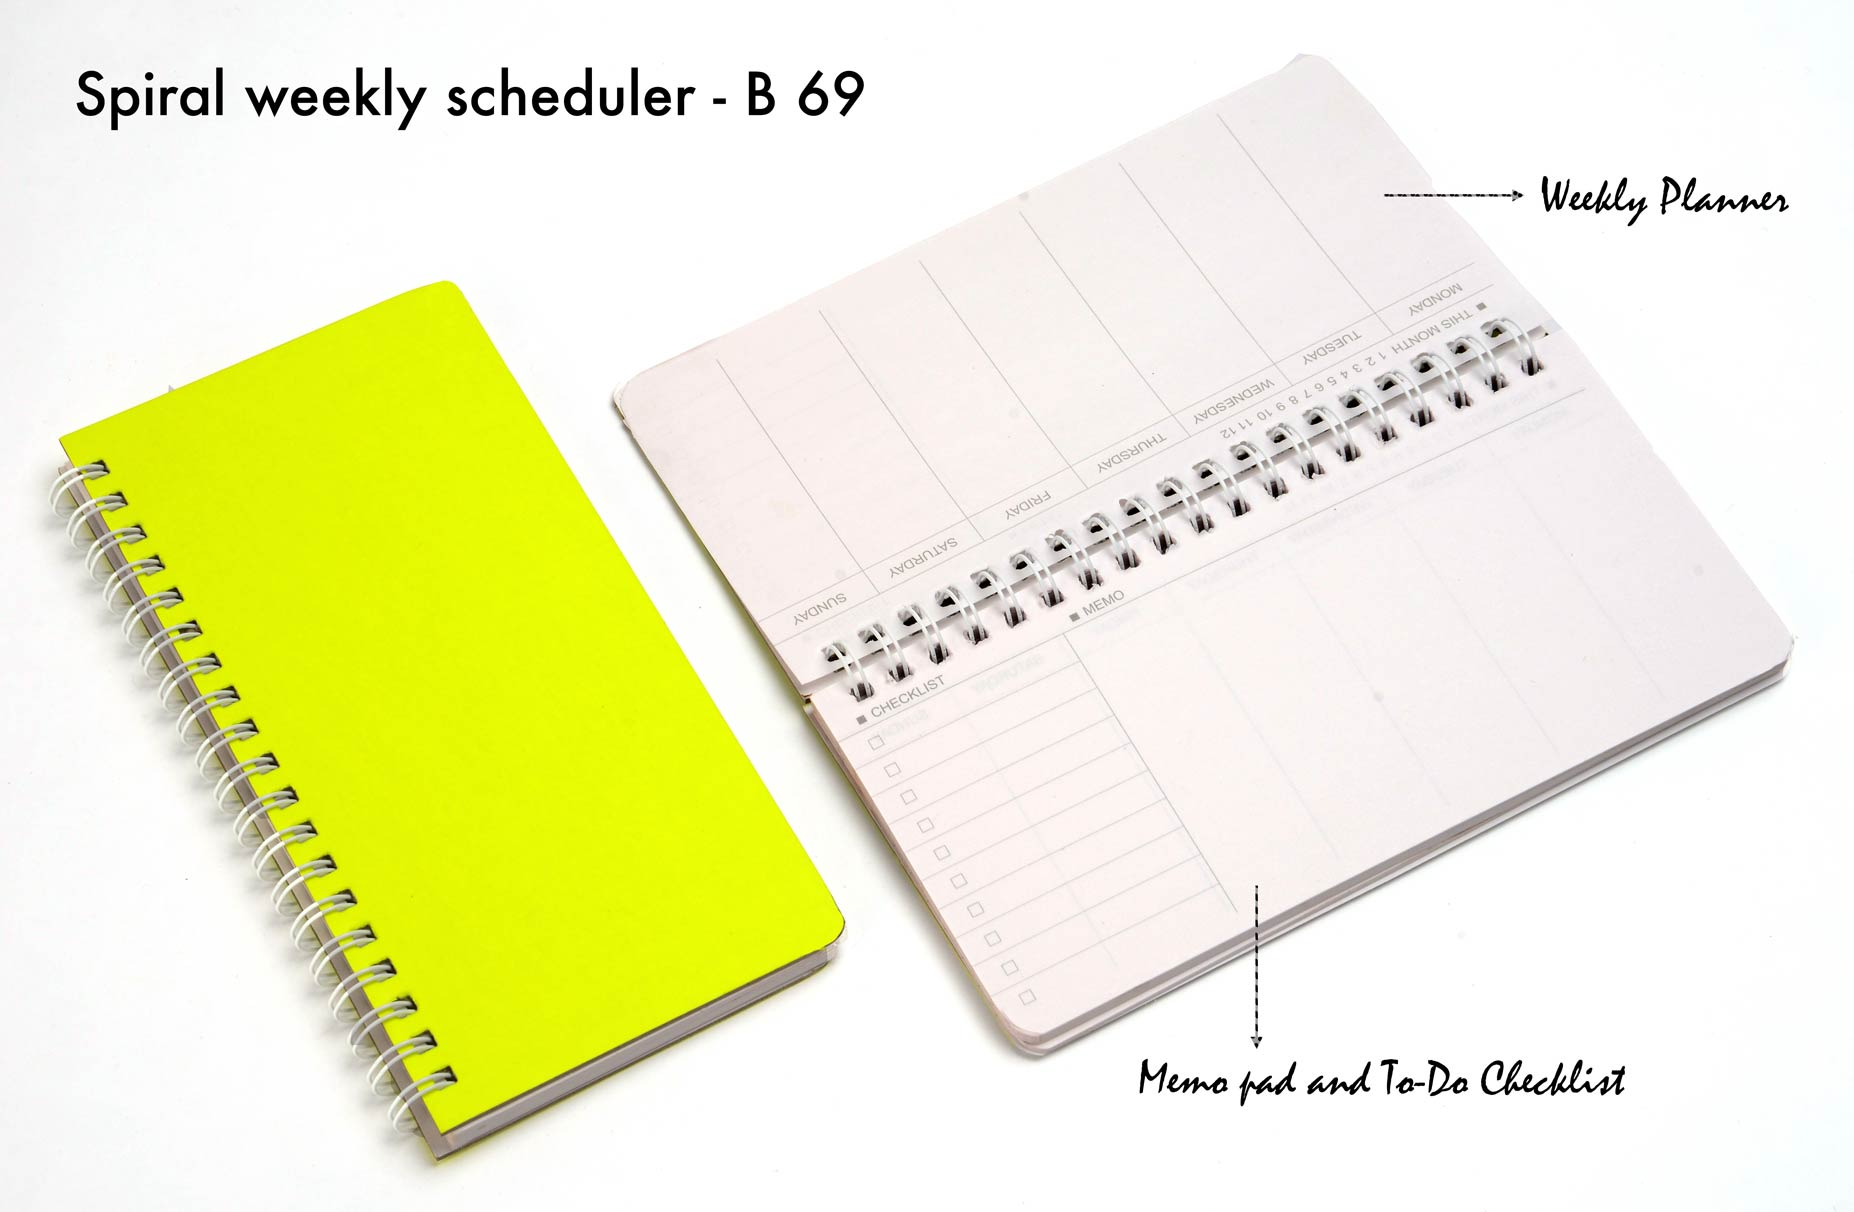 B69 - Spiral weekly scheduler